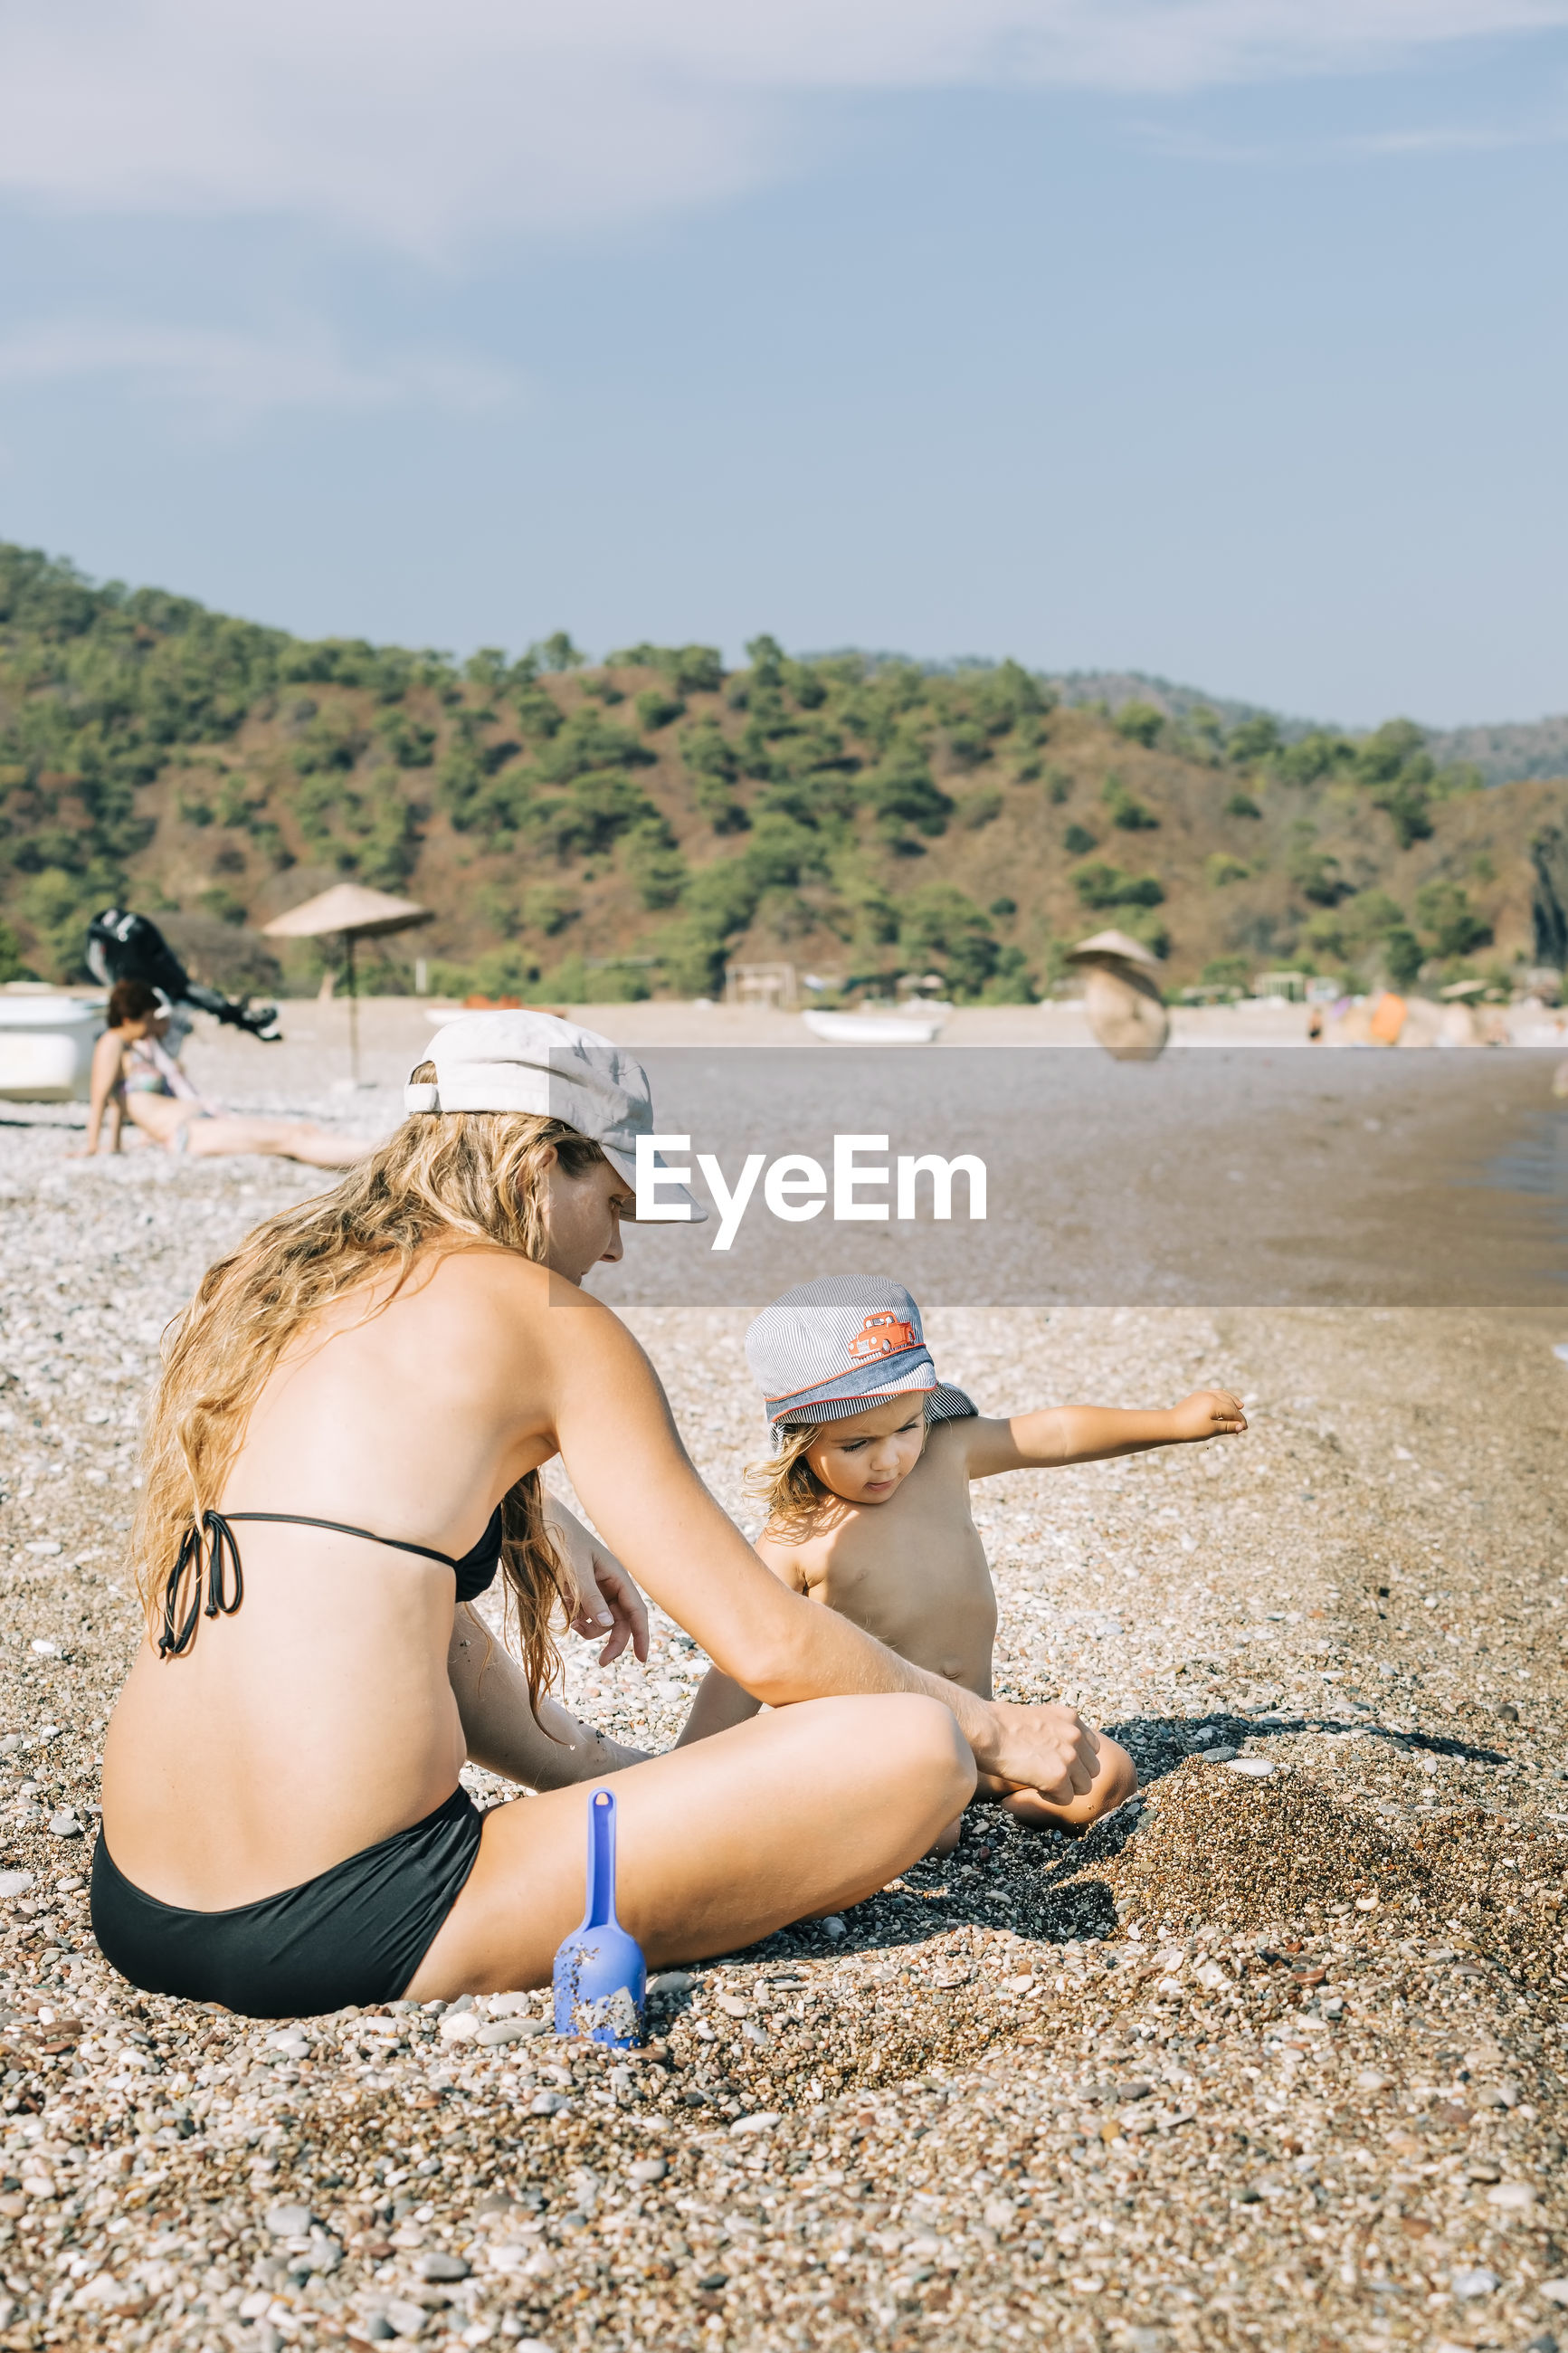 YOUNG WOMAN SITTING ON BEACH WITH UMBRELLA